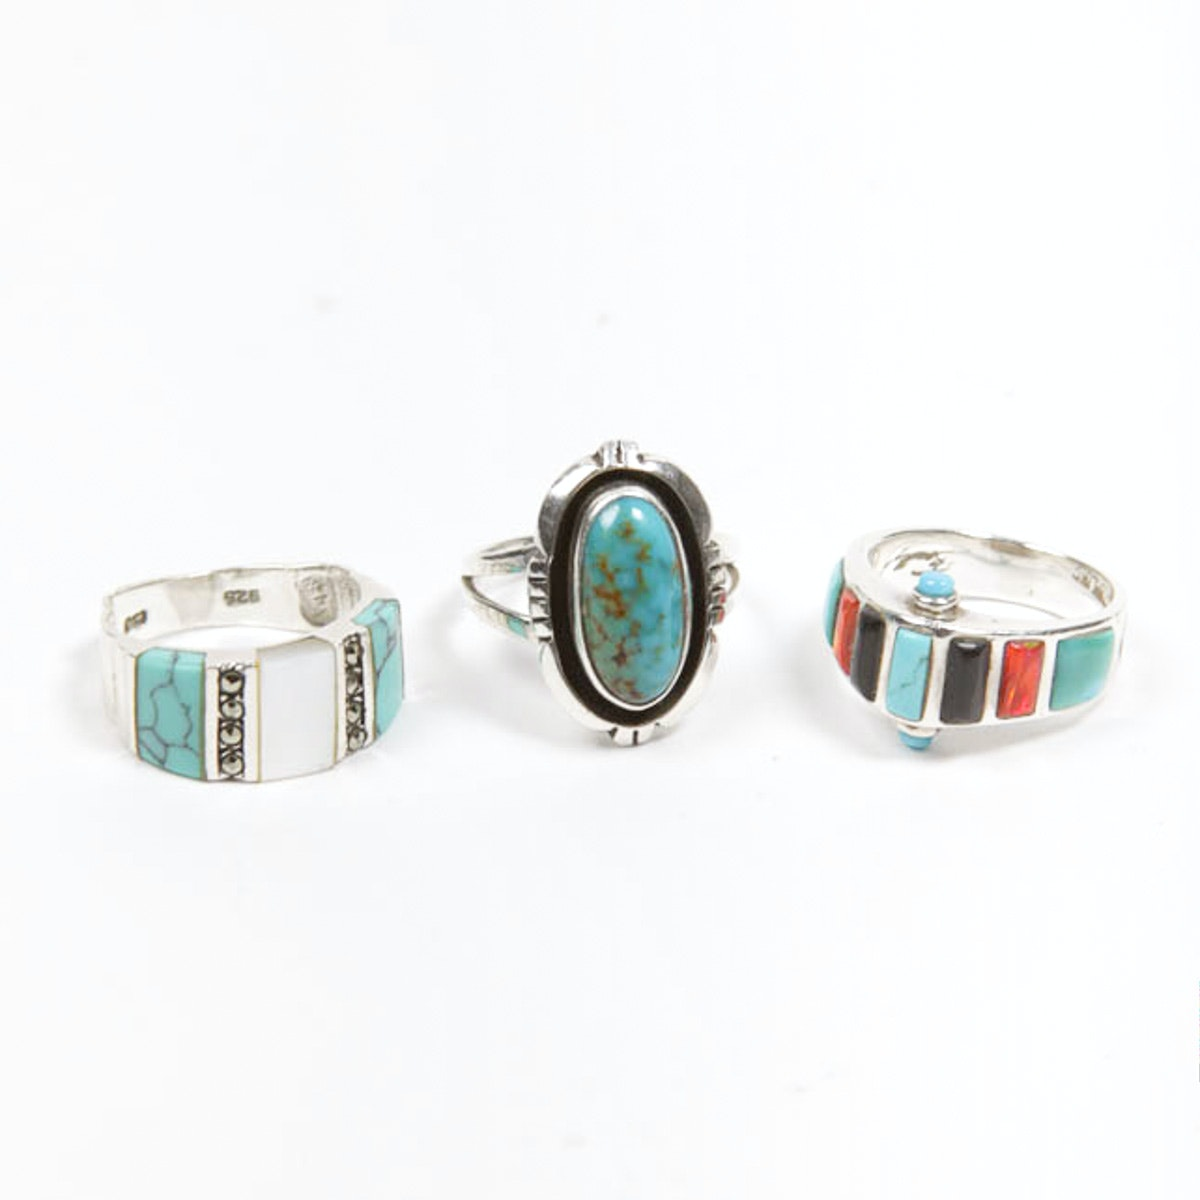 Three Sterling Silver Rings with Stones Including LM Nez Navajo